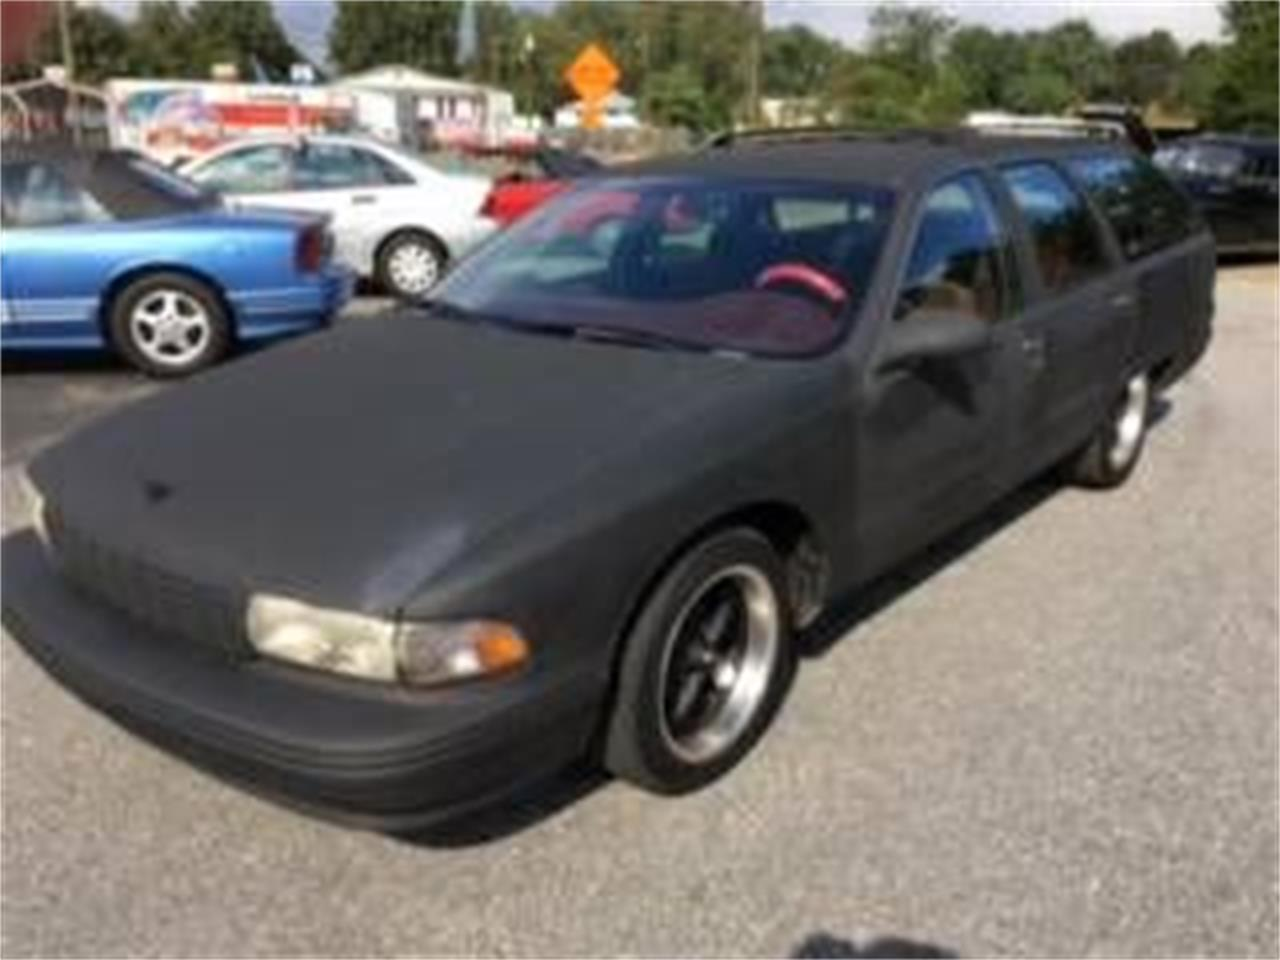 For Sale: 1995 Chevrolet Caprice in Cadillac, Michigan